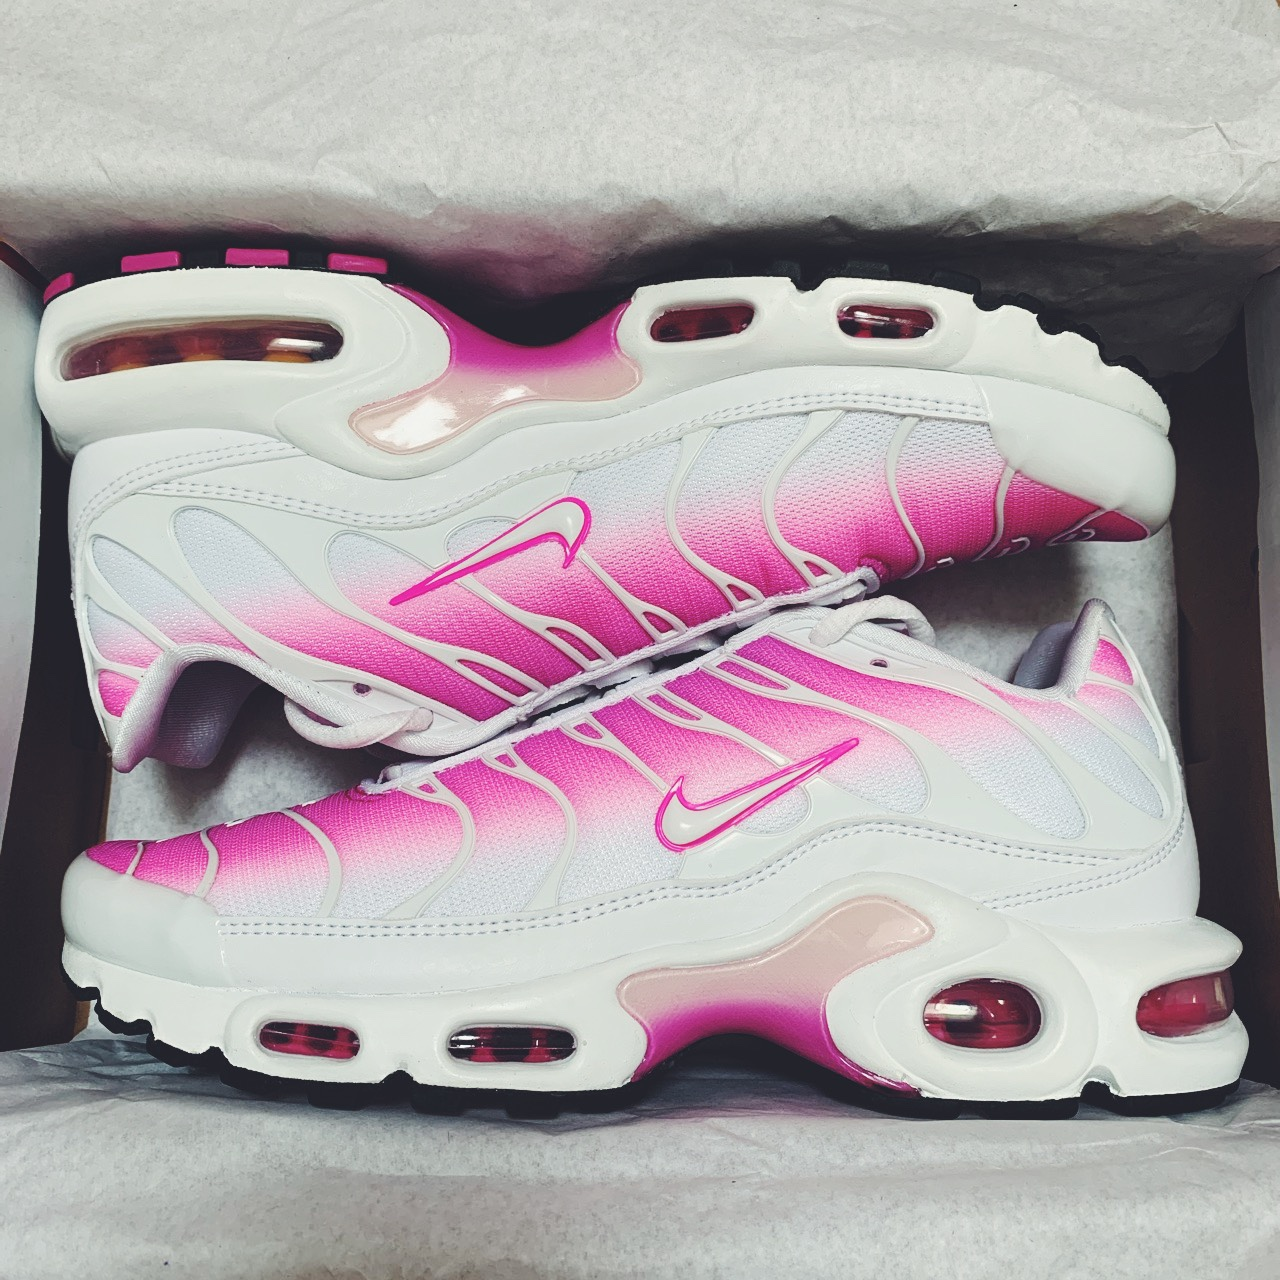 white and pink tns